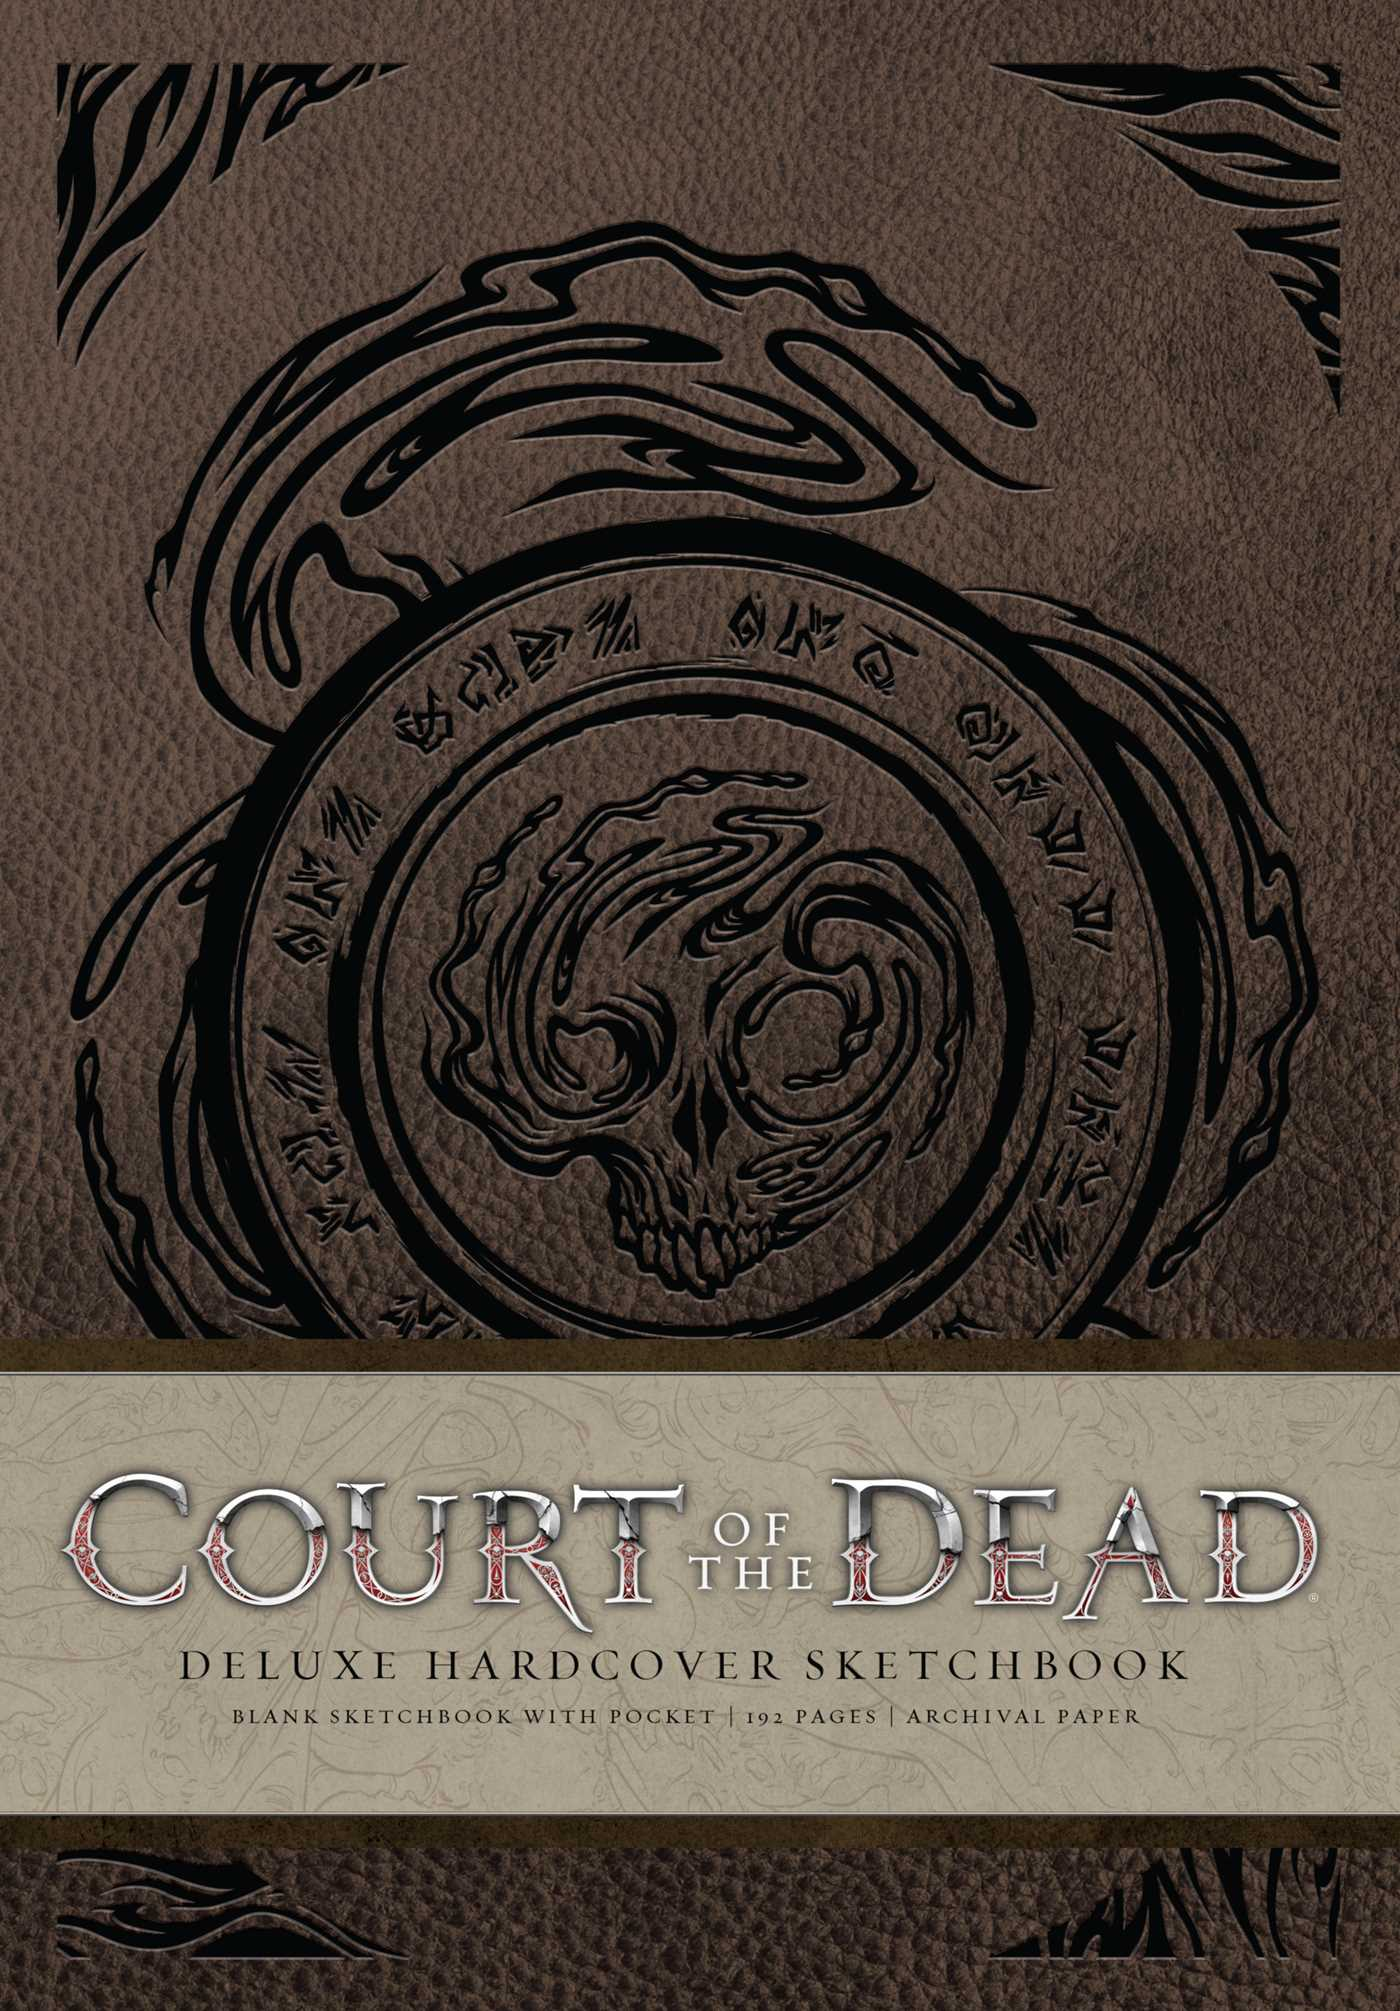 Court of the dead hardcover blank sketchbook 9781683831235 hr